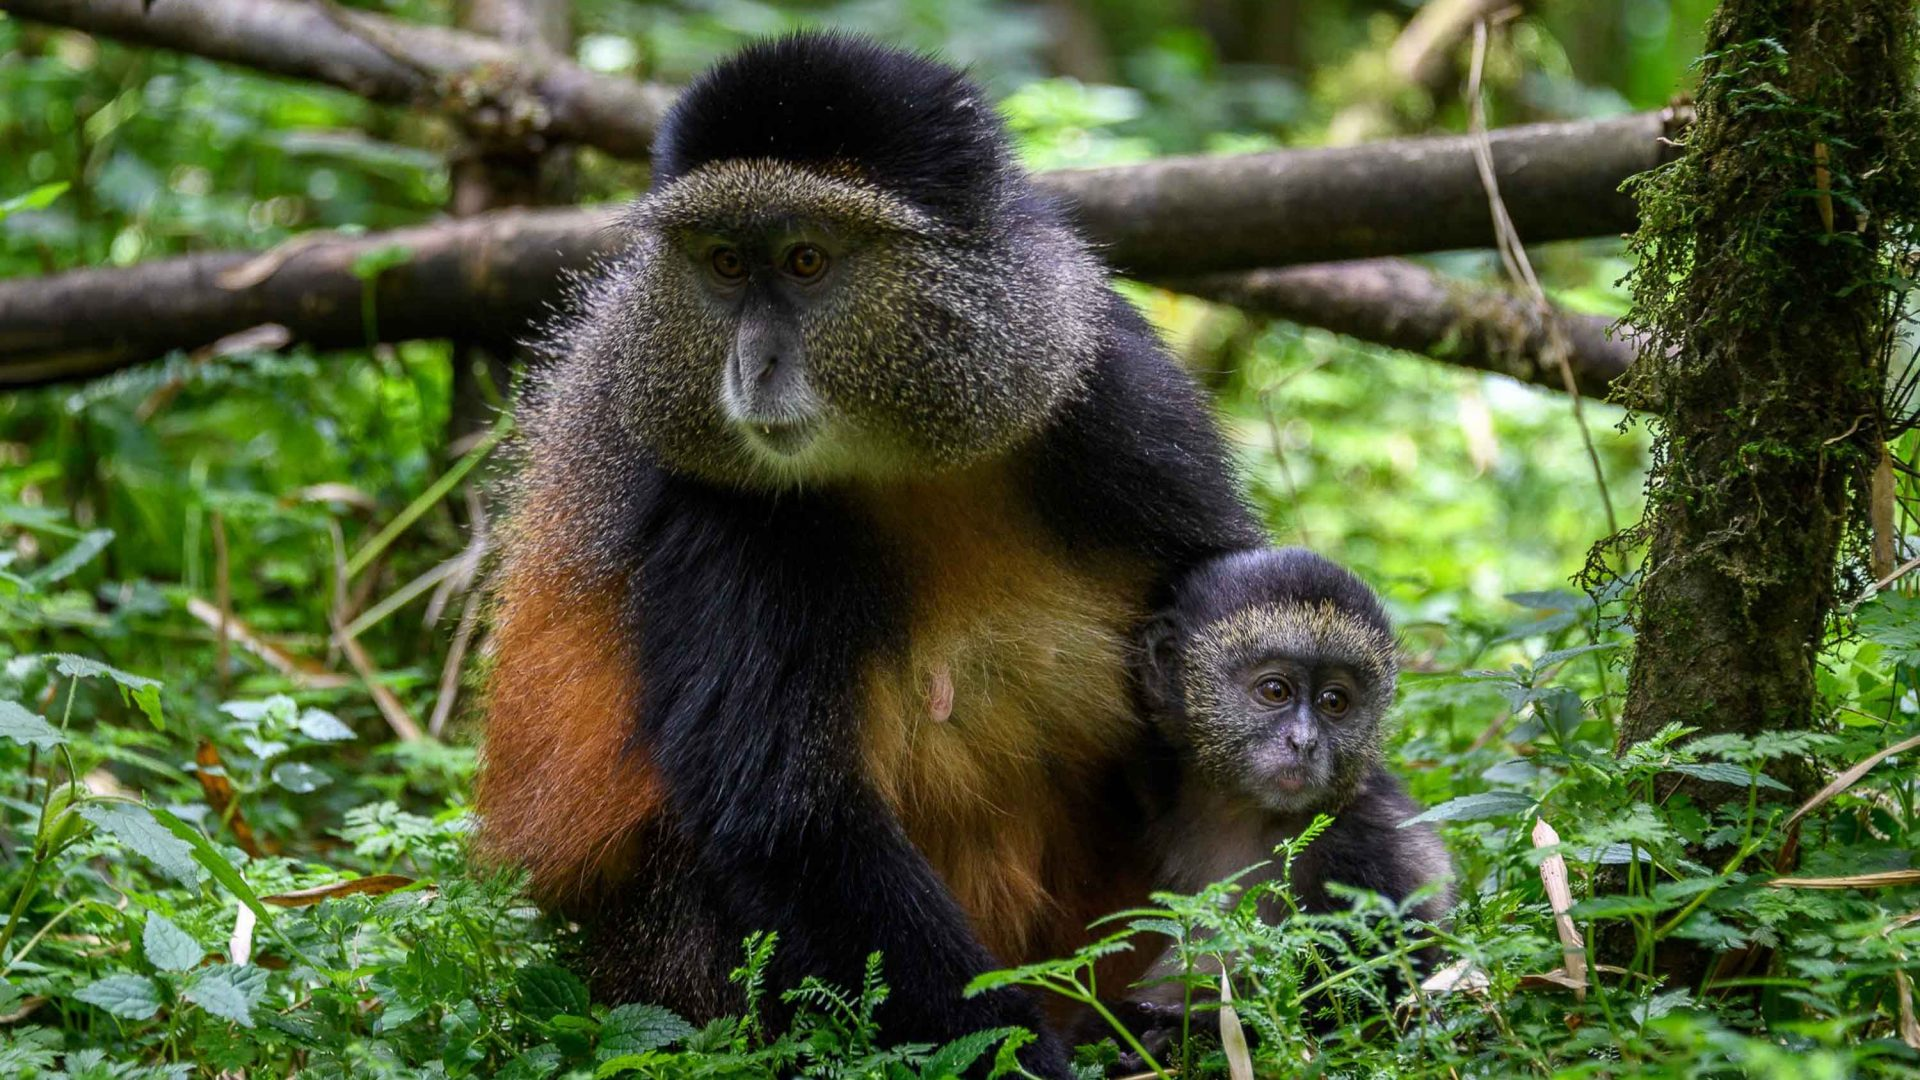 Primates in Rwanda are a major drawcard for tourists but Rwanda is trying hard to protect them.